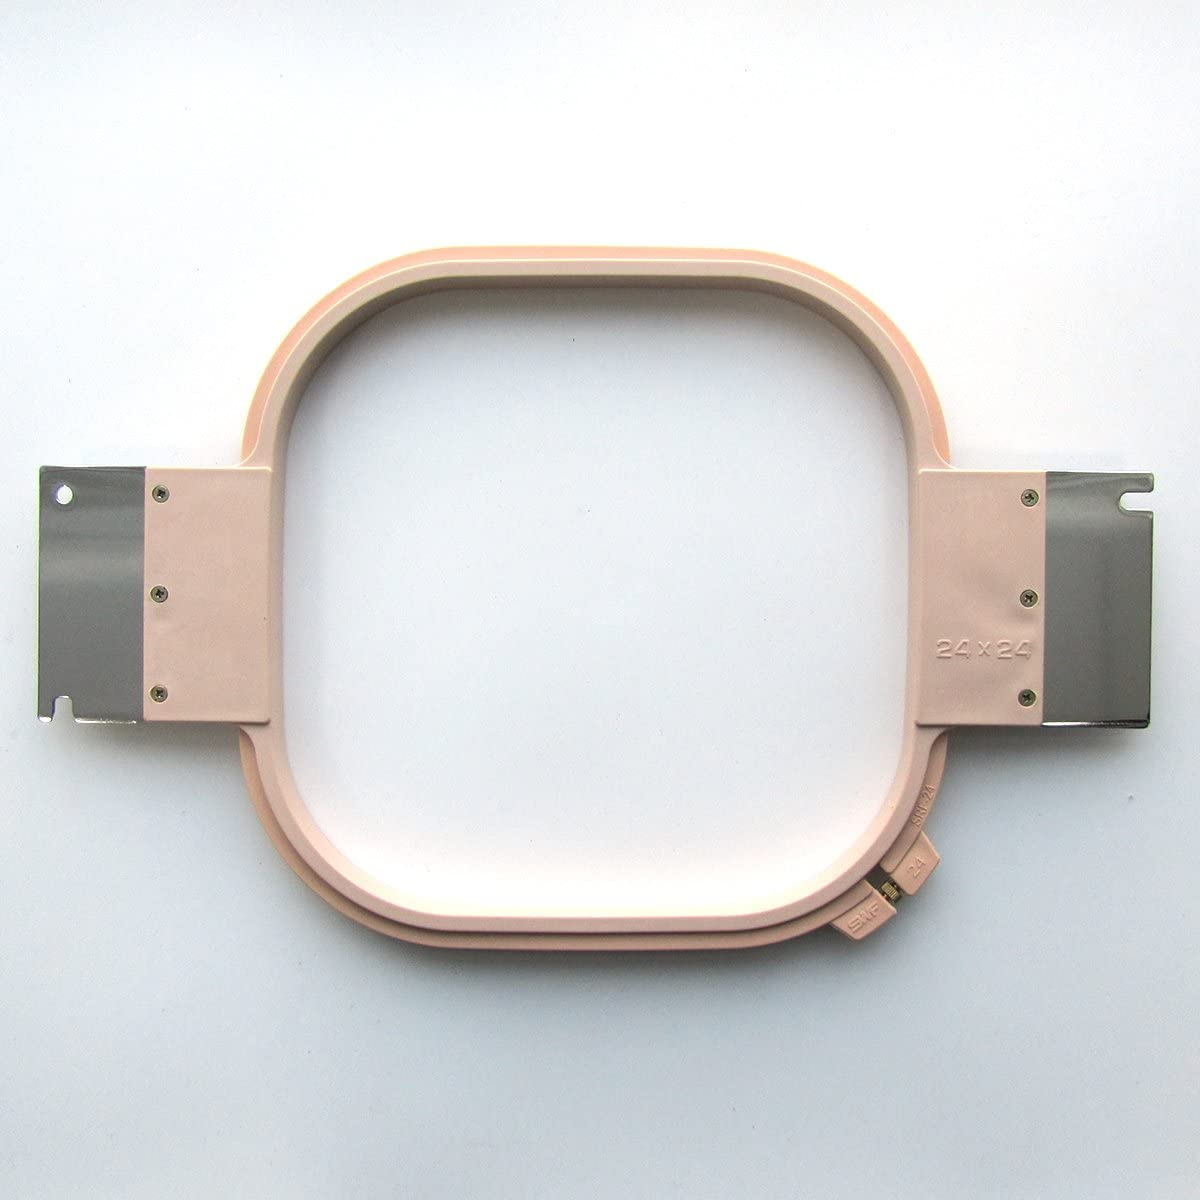 - fit for SWF Commercial Machines #KP395-085I-24 KUNPENG 24cm 9.4-395mm Wide 1PCS Embroidery Hoop 15.5